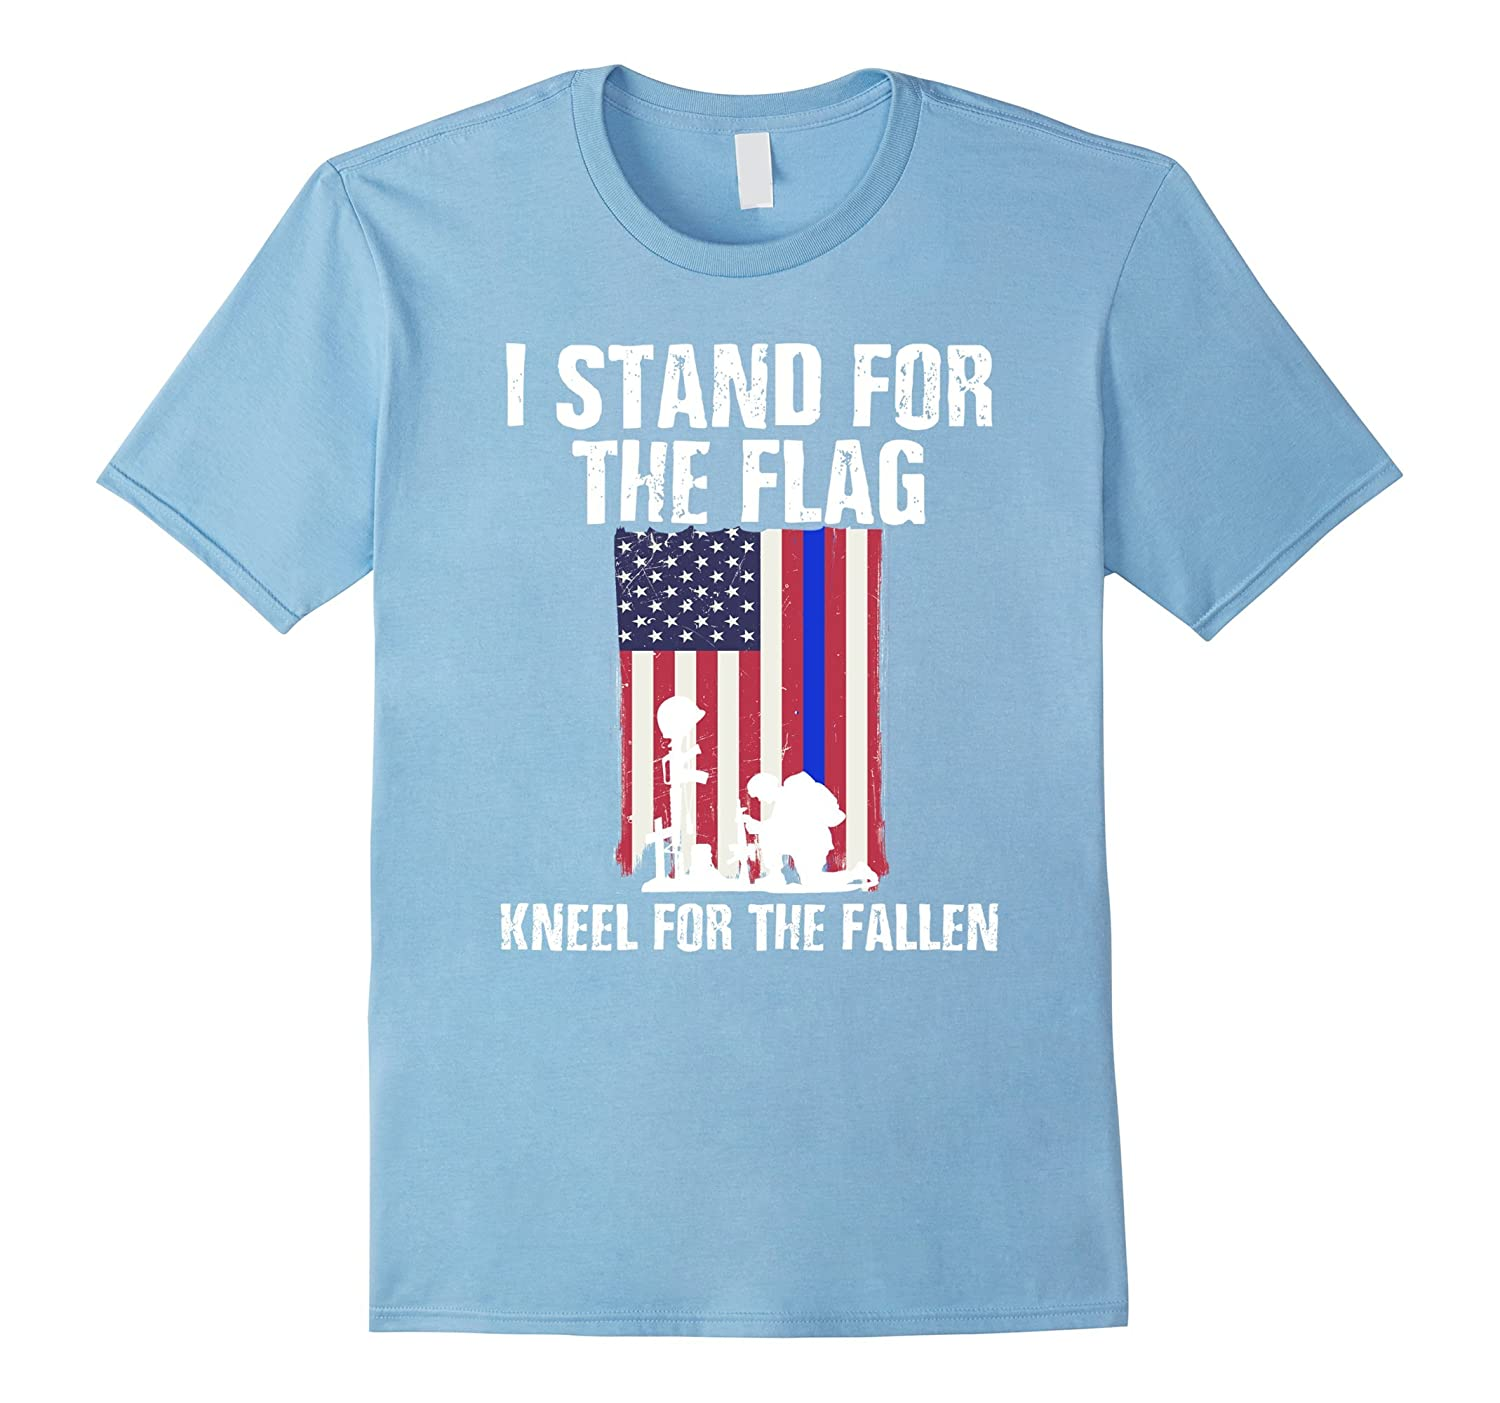 e41c8df9 Stand For The Flag, Kneel For The Fallen T-Shirt Blue Line-Art ...